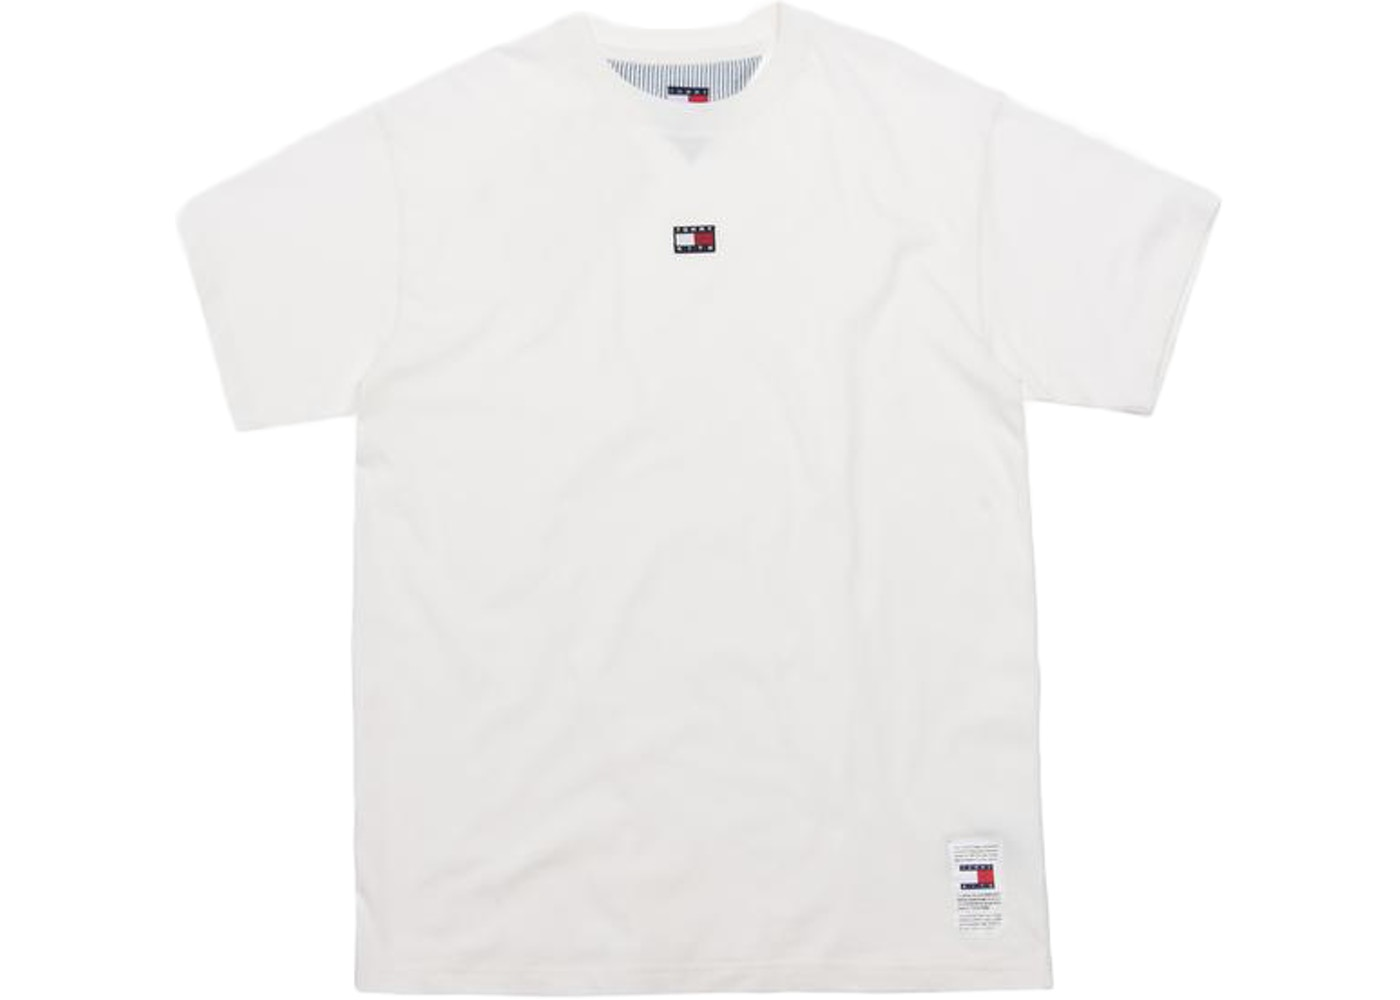 023665a80 Kith T-Shirts - Buy & Sell Streetwear